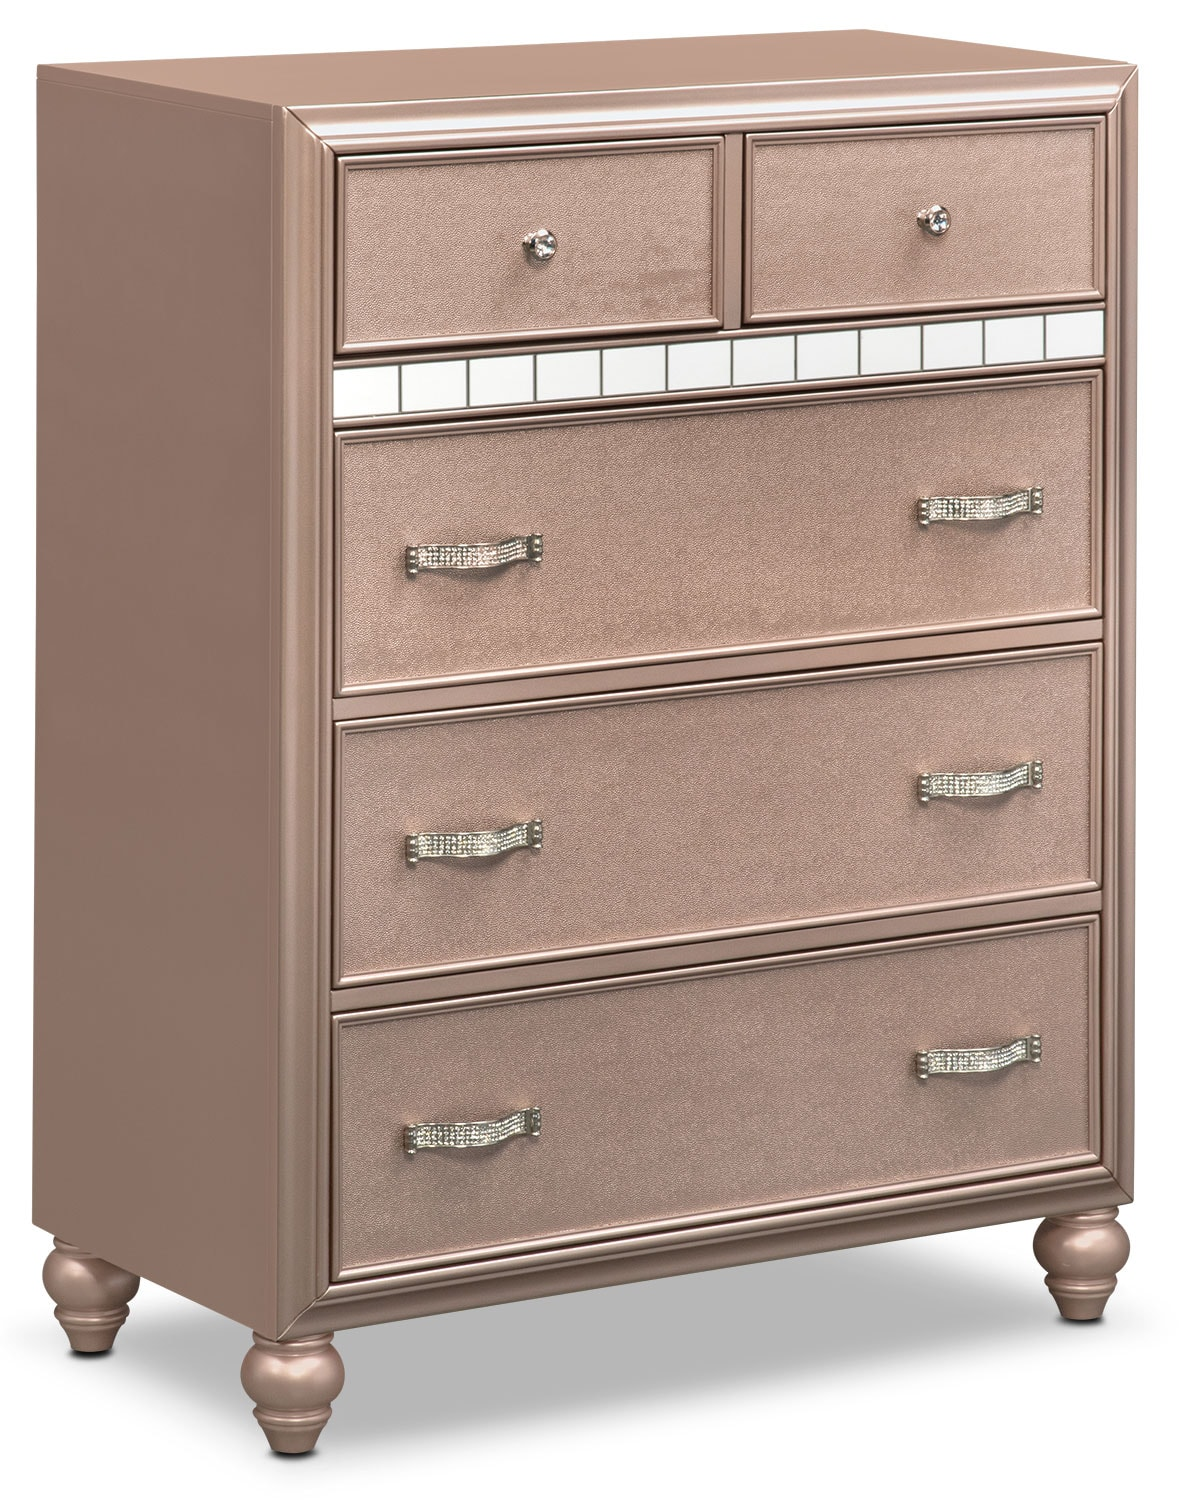 shop bedroom furniture value city furniture 17688 | 485156 fit inside 7c320 320 composite to center center 7c320 320 background color white